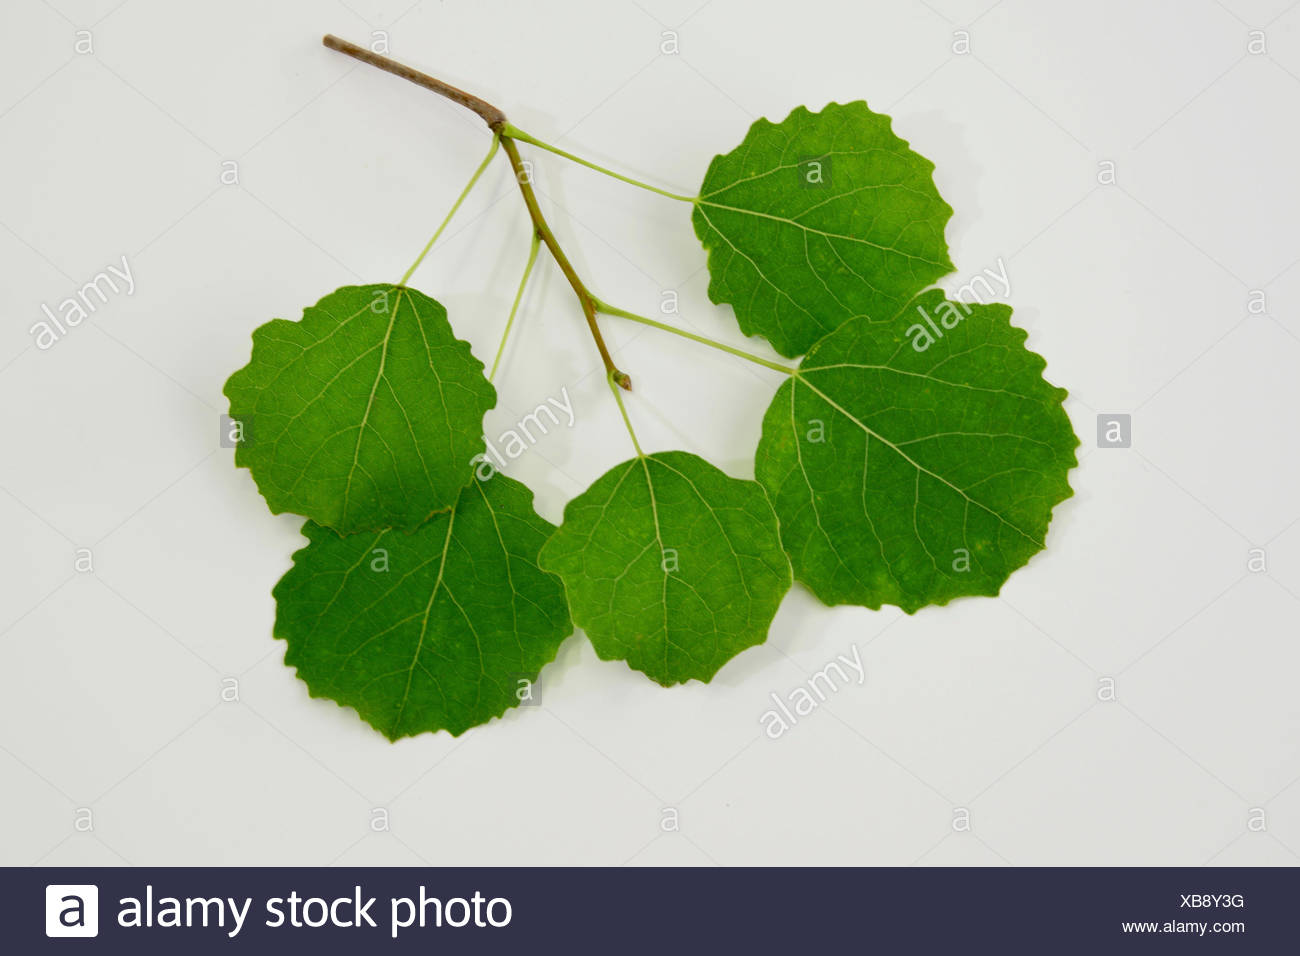 Aspen (Populus tremula), twig with fresh leaves, studio picture. - Stock Image